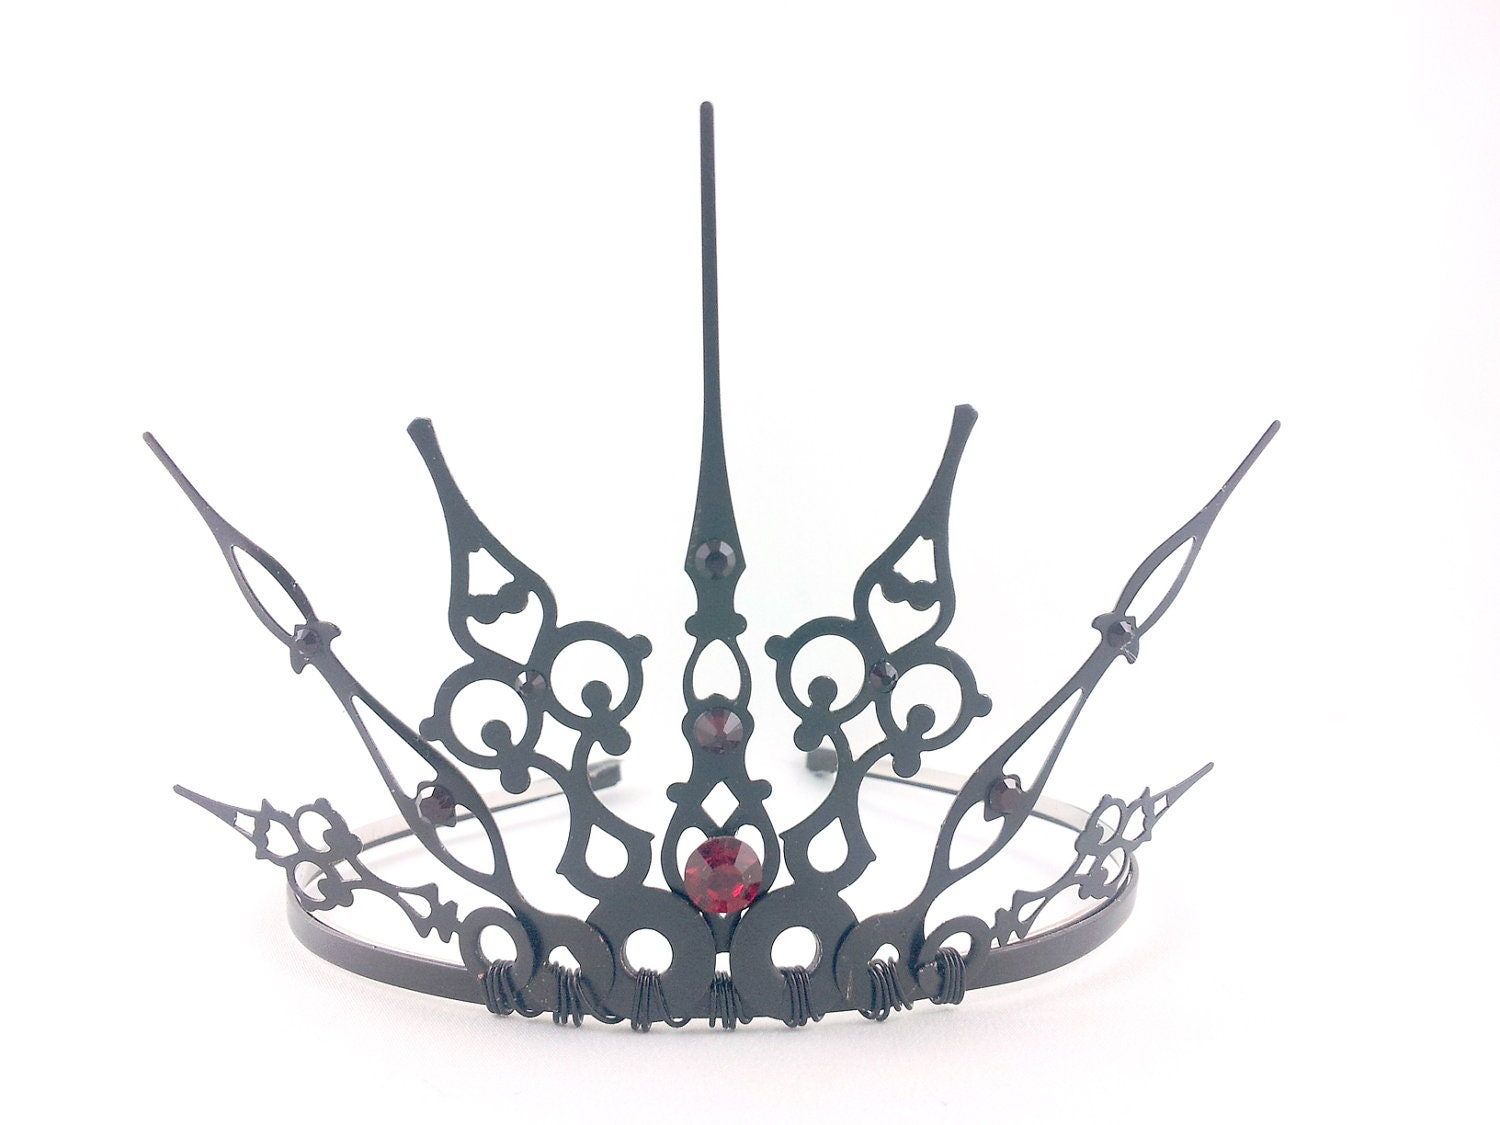 Evil Crown Drawing